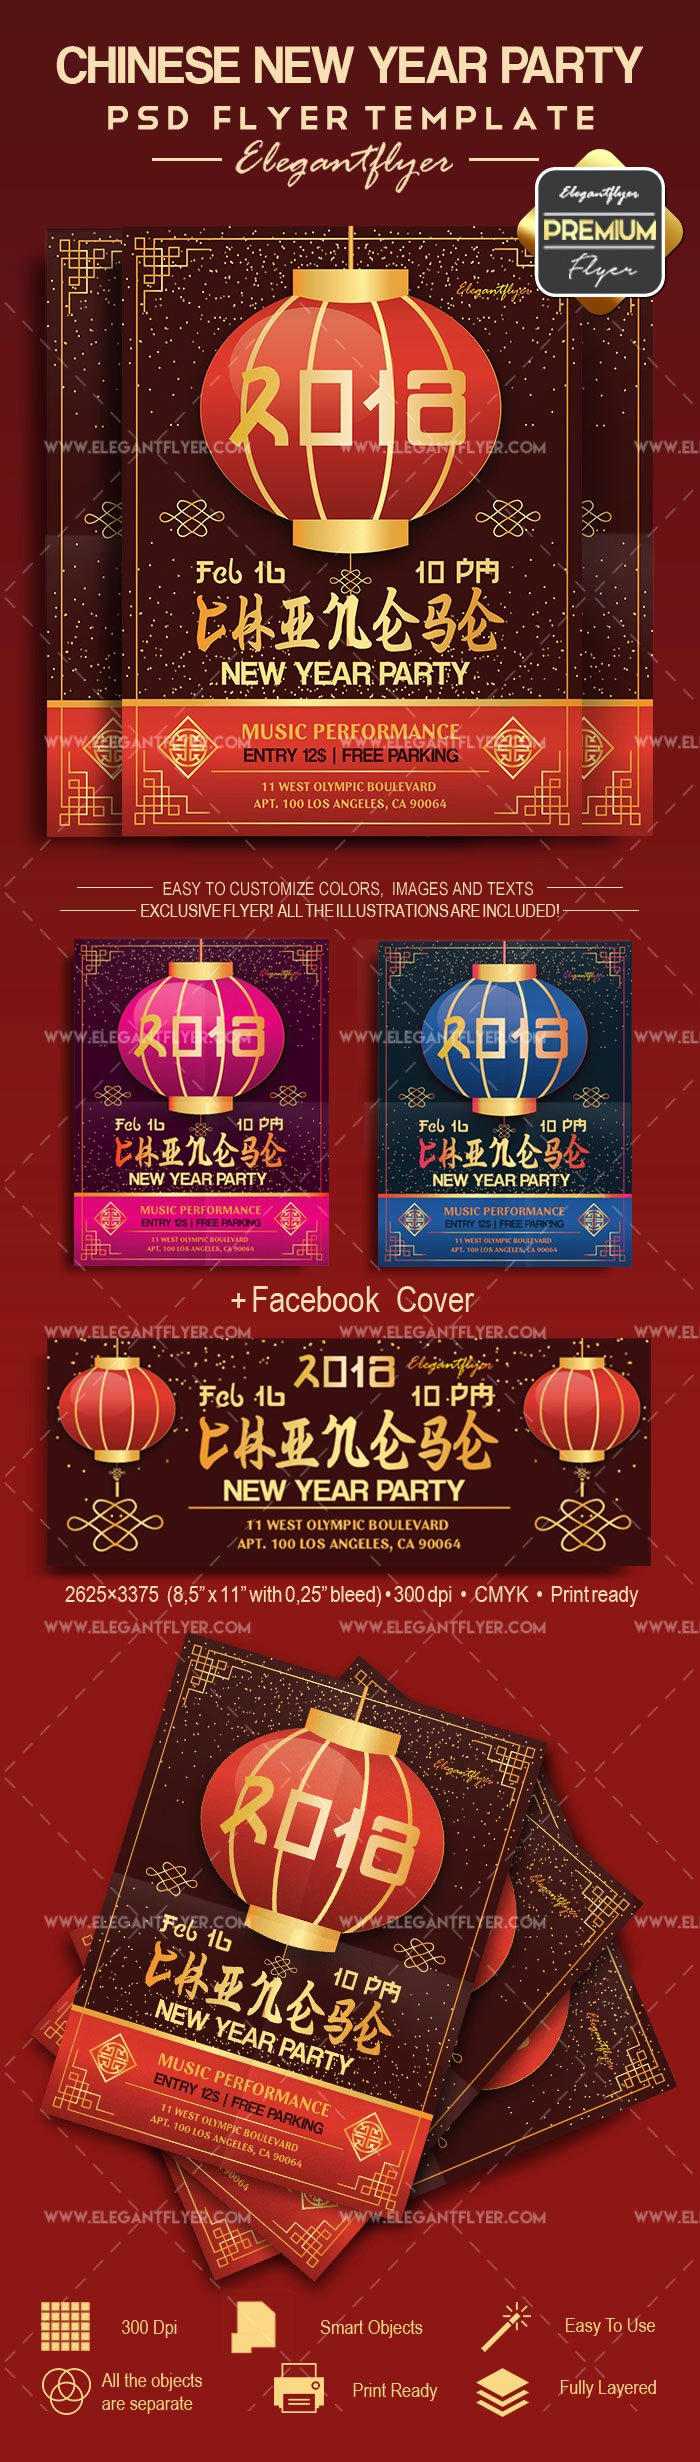 New Year Flyers Template Fresh Chinese New Year Flyer Templates – by Elegantflyer